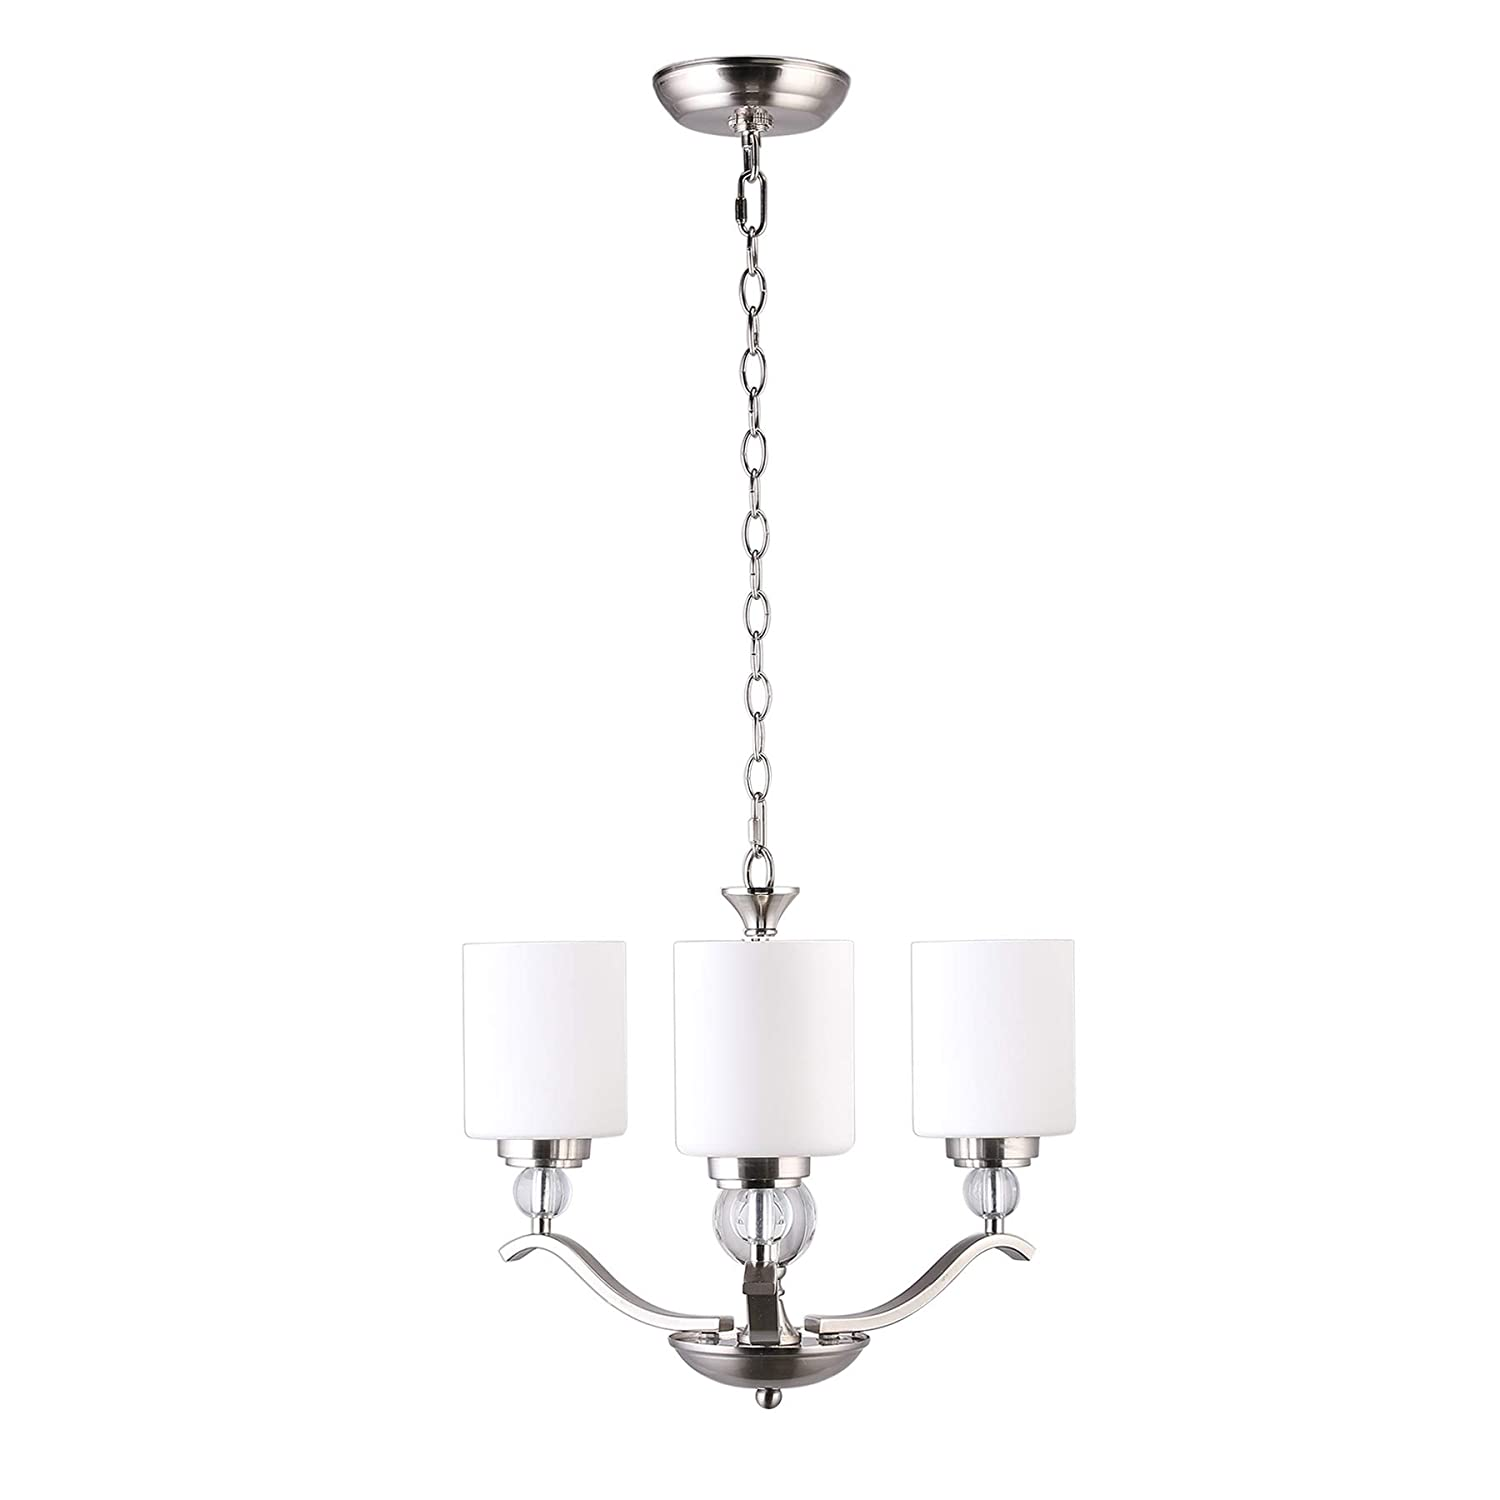 CO-Z 3 Light Brushed Nickel Chandelier, Contemporary Hanging Ceiling Light Fixture with Decorative K9 Crystal Ball and Satin Etched Cased Opal Glass Shade, Modern Chandelier Lighting for Dining Room